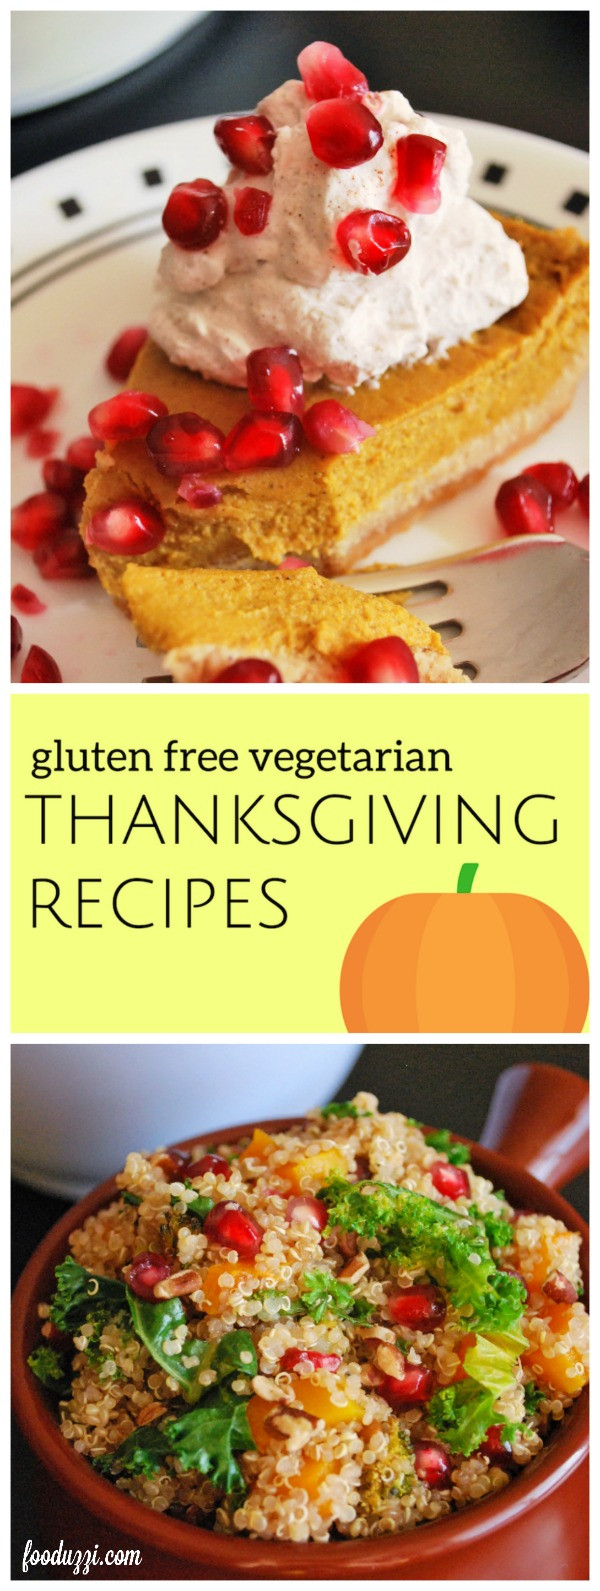 Gluten Free Vegetarian Thanksgiving  Gluten Free Ve arian Thanksgiving Recipes Fooduzzi